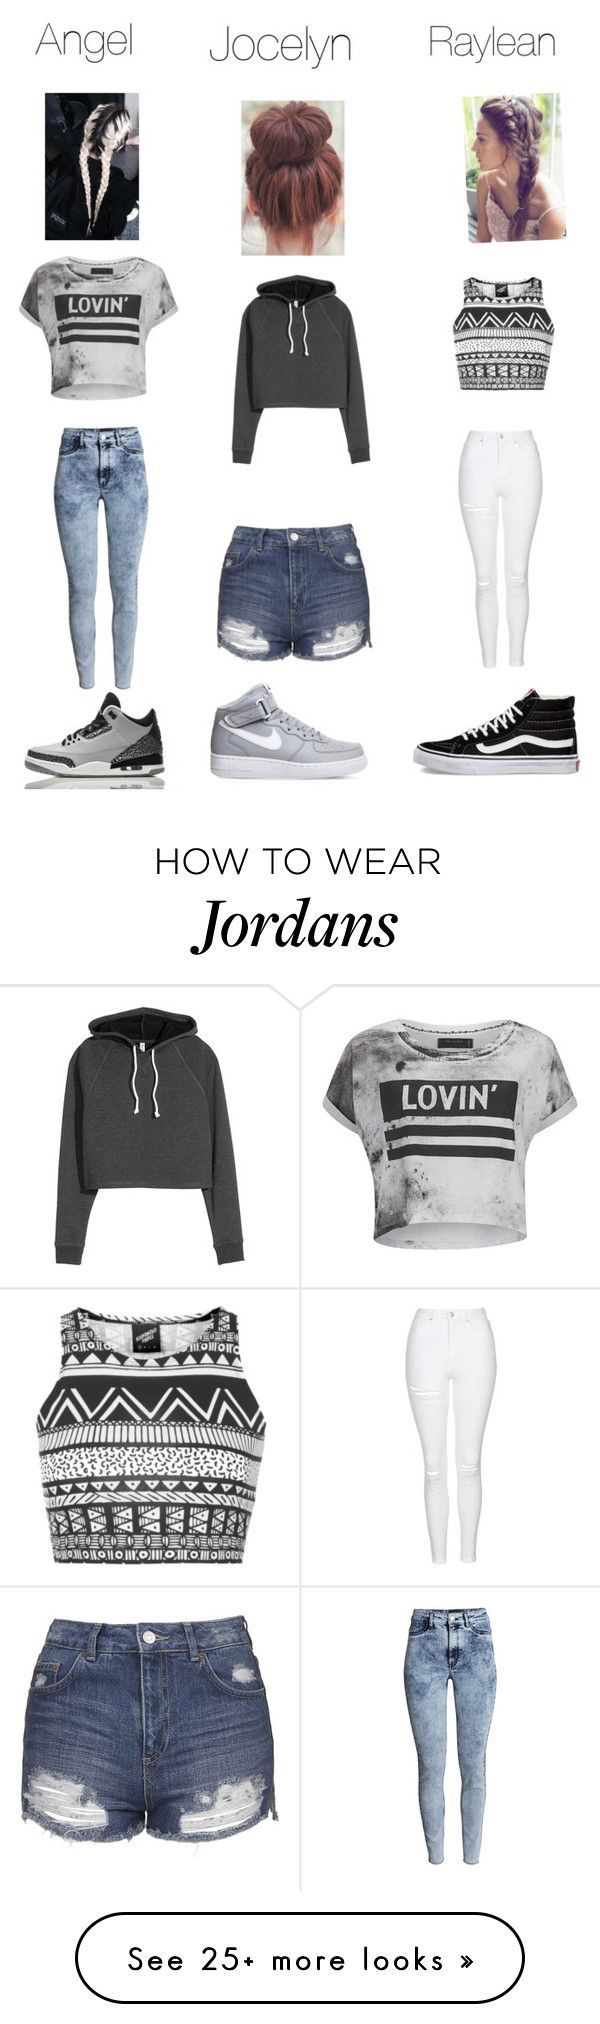 """""""Friends"""" by baseballgirl109 on Polyvore featuring Illustrated People, Topshop, H&M, Religion Clothing, NIKE, Vans and Retrò"""